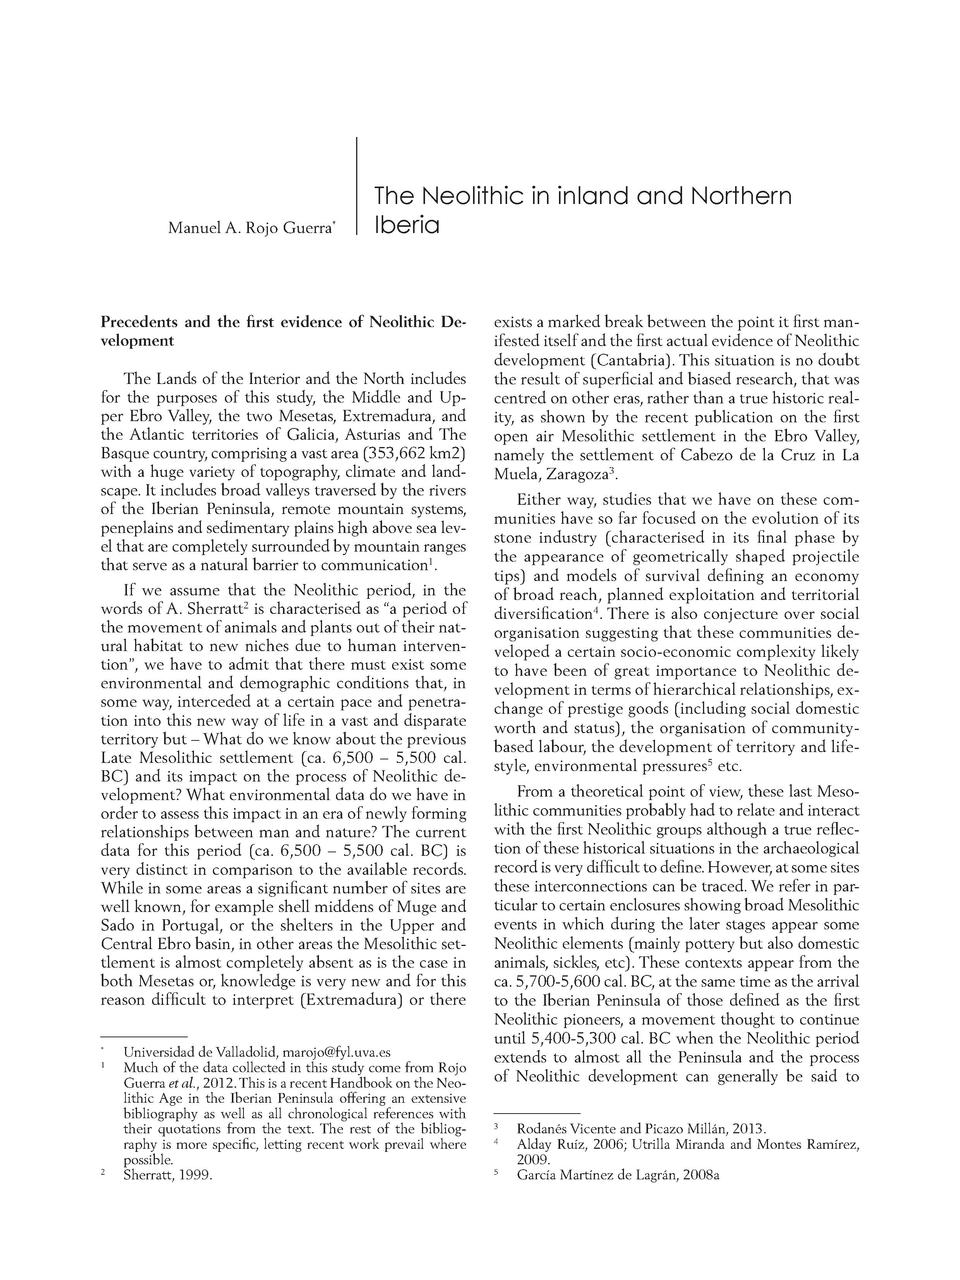 Manuel A. Rojo Guerra   The Neolithic in inland and Northern Iberia  Precedents and the    rst evidence of Neolithic Devel...